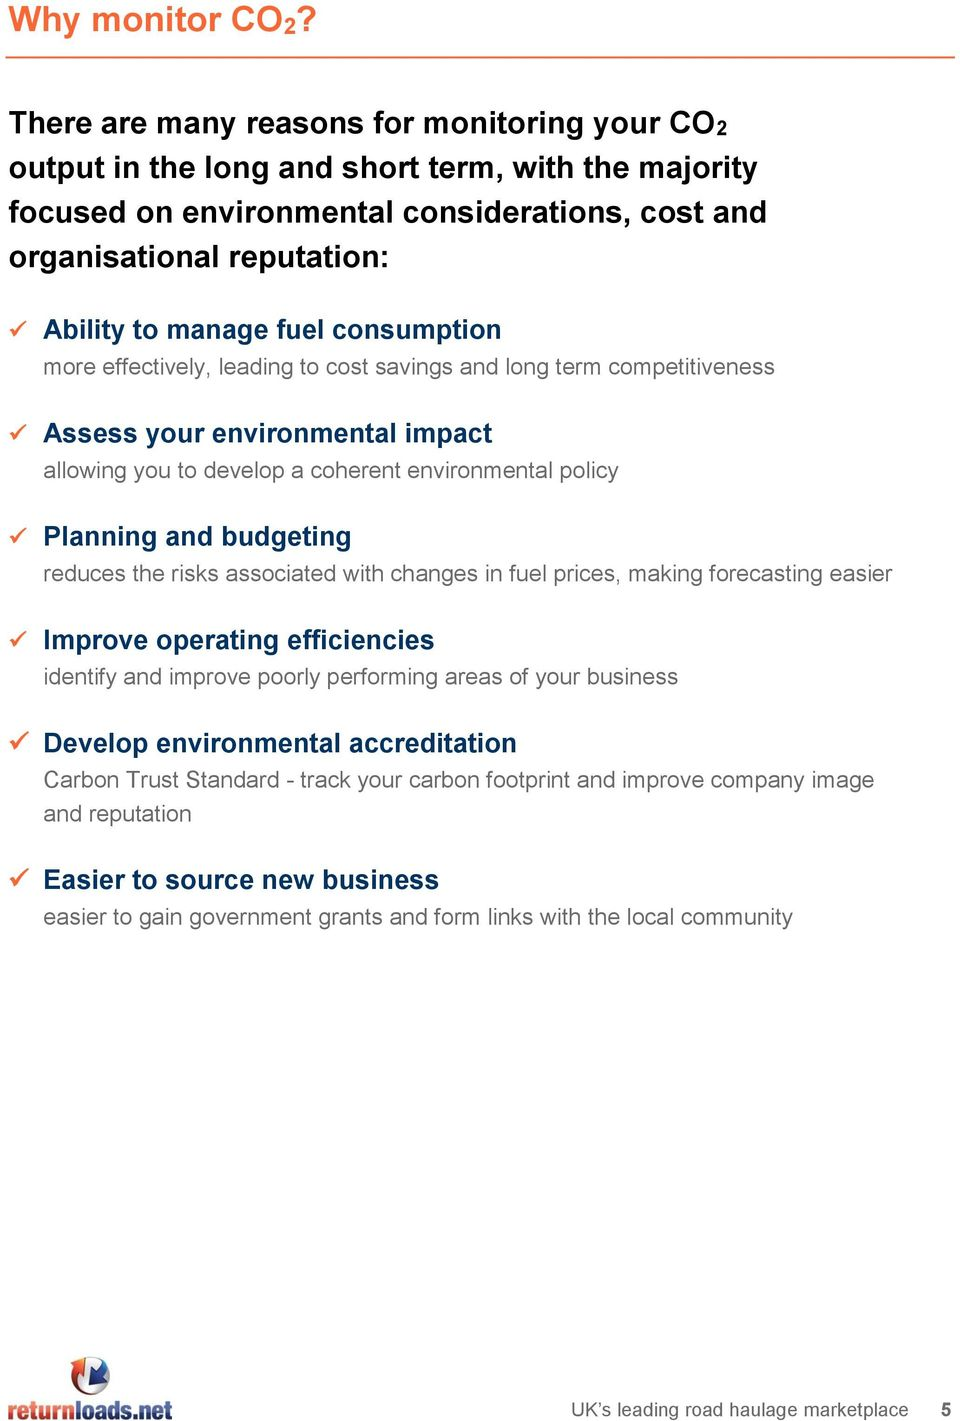 consumption more effectively, leading to cost savings and long term competitiveness Assess your environmental impact allowing you to develop a coherent environmental policy Planning and budgeting